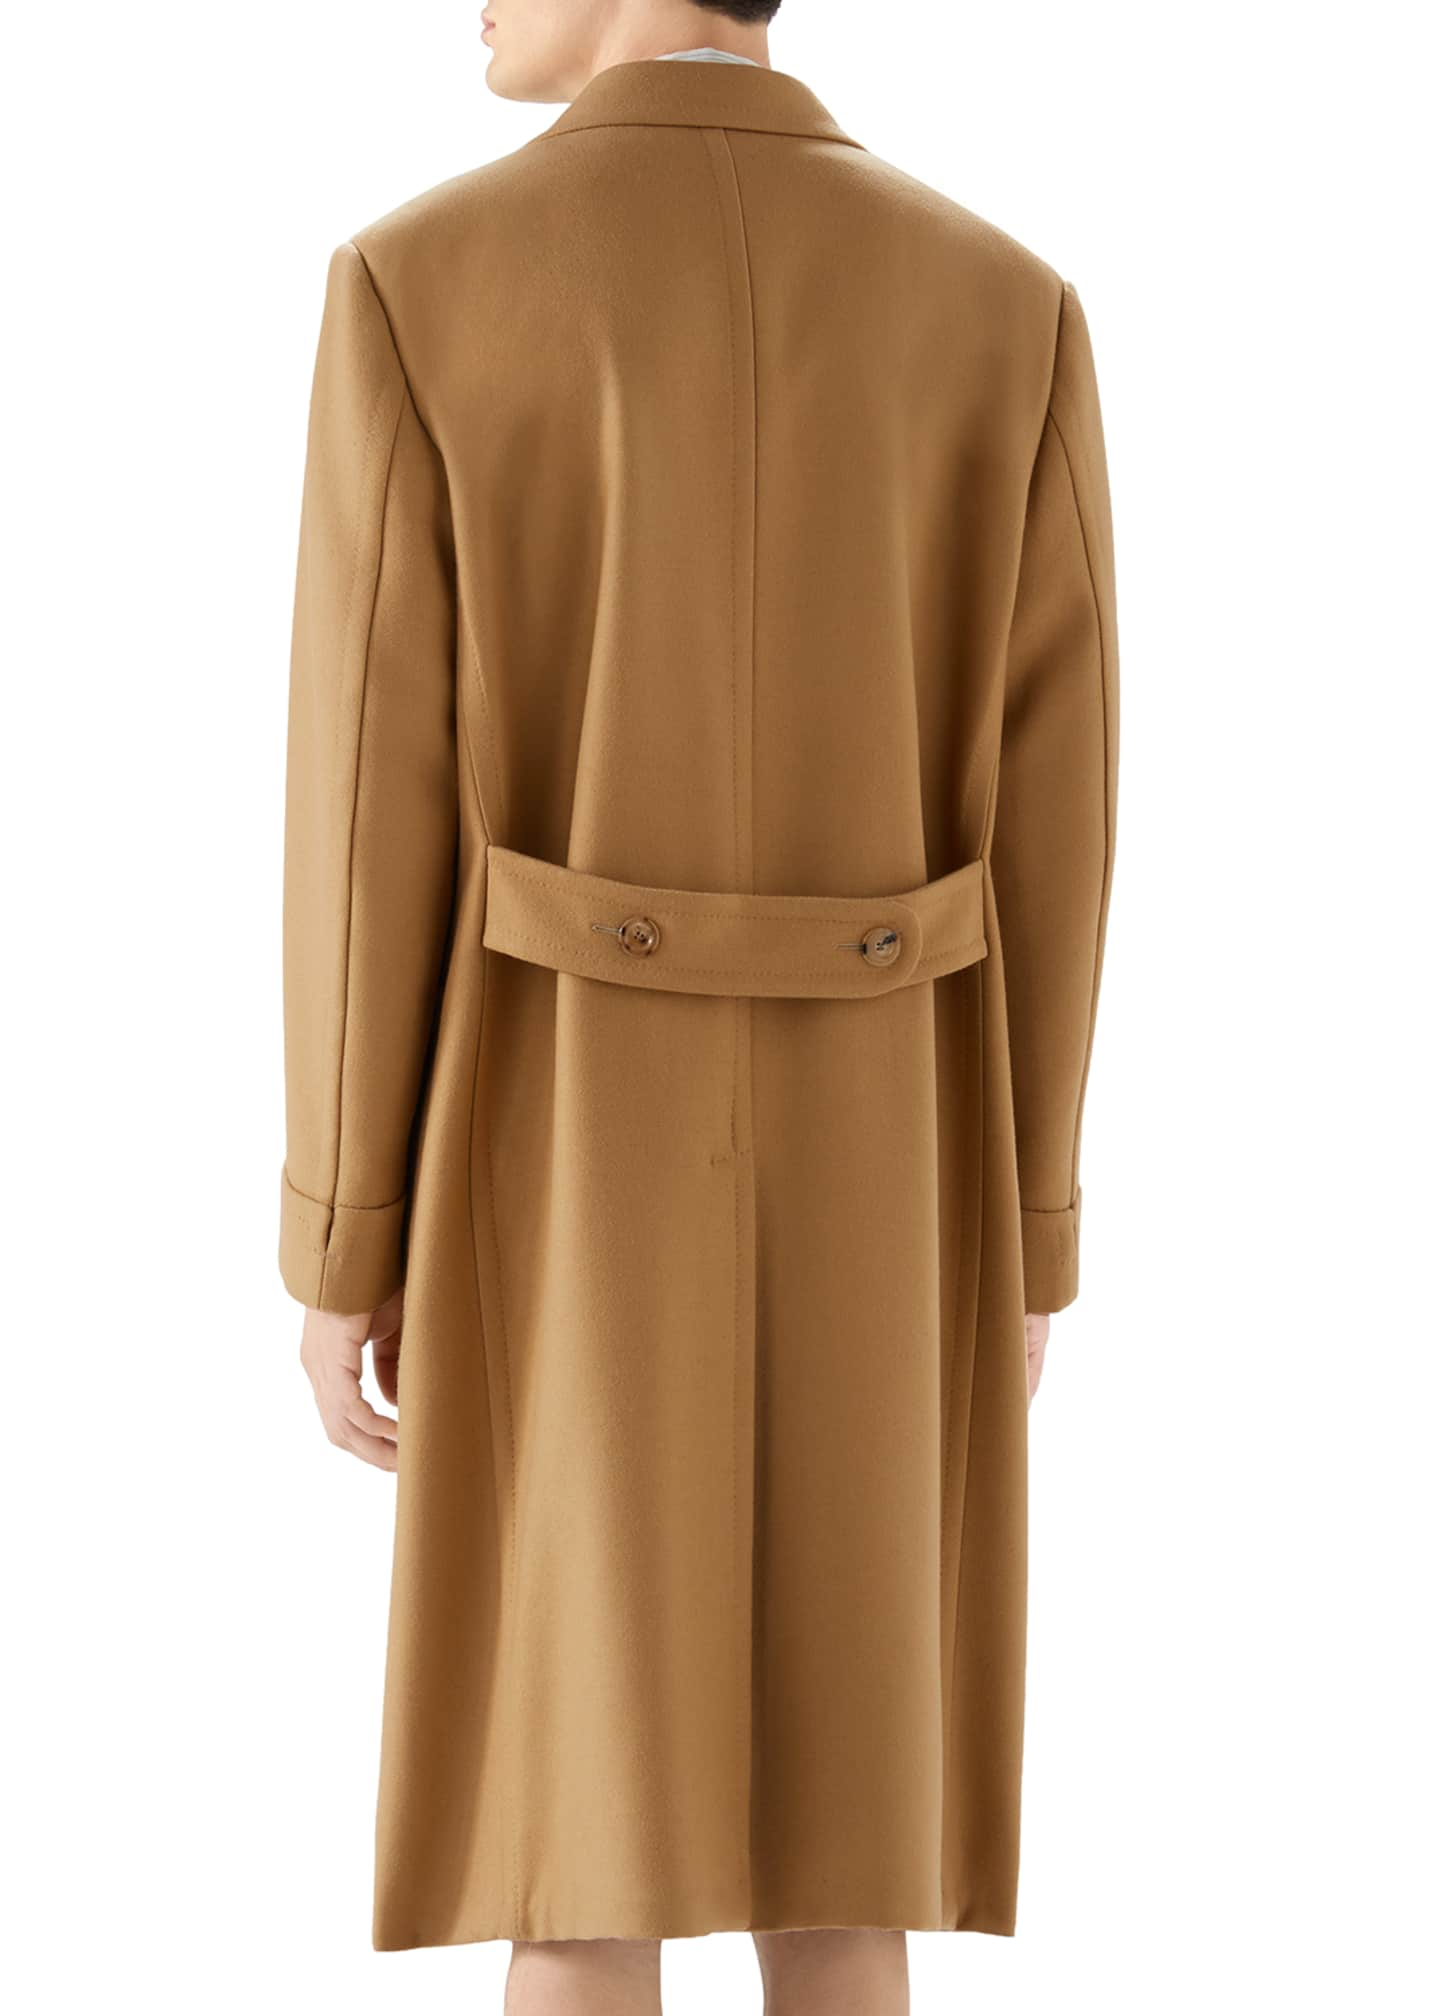 Image 2 of 2: Men's Double-Breasted Camel Coat